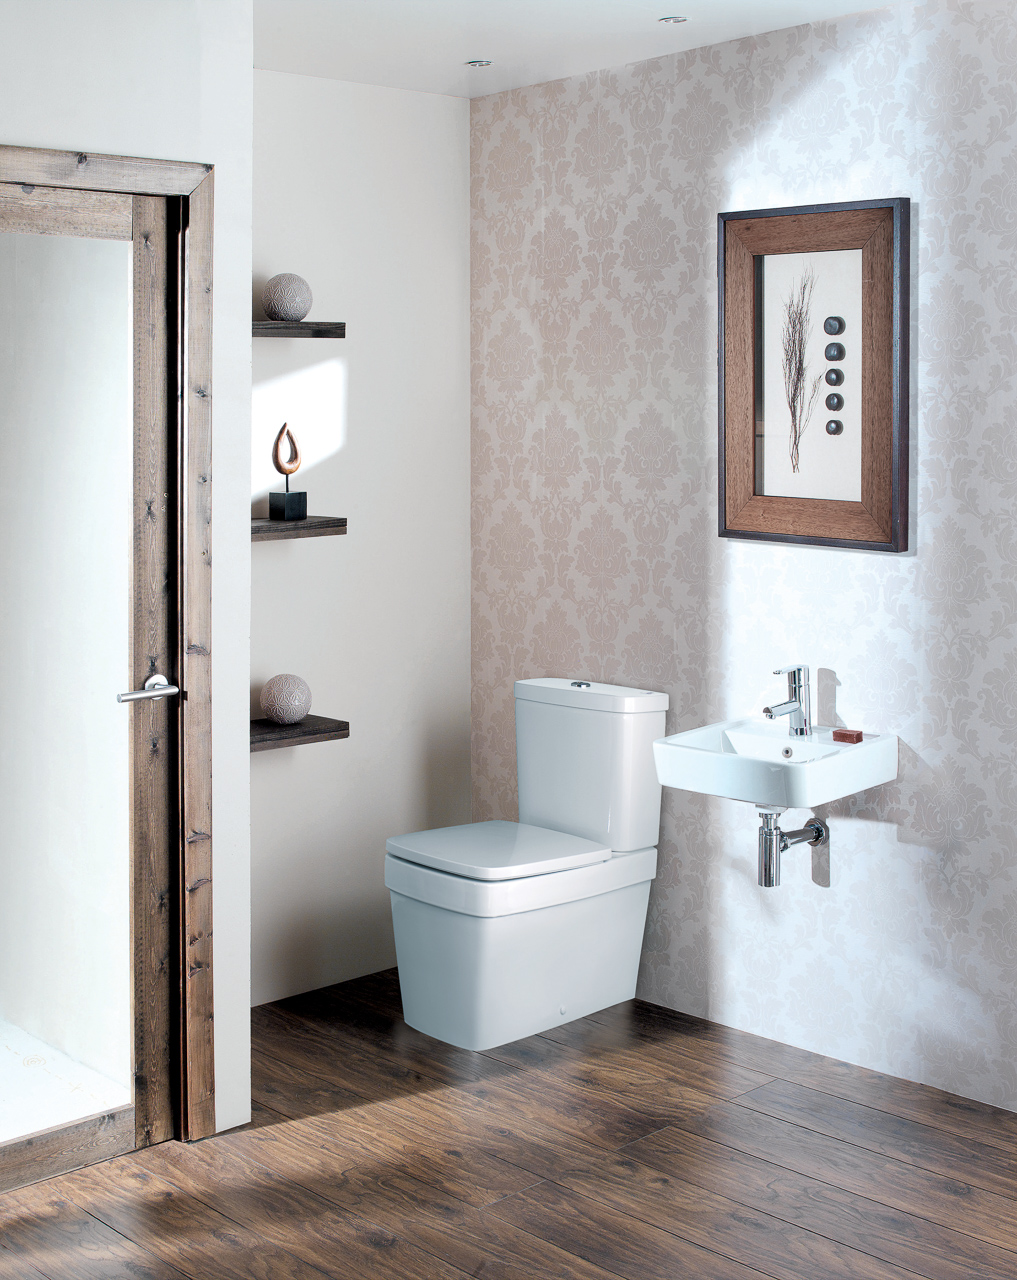 Silverdale Bathrooms: Henley Pan